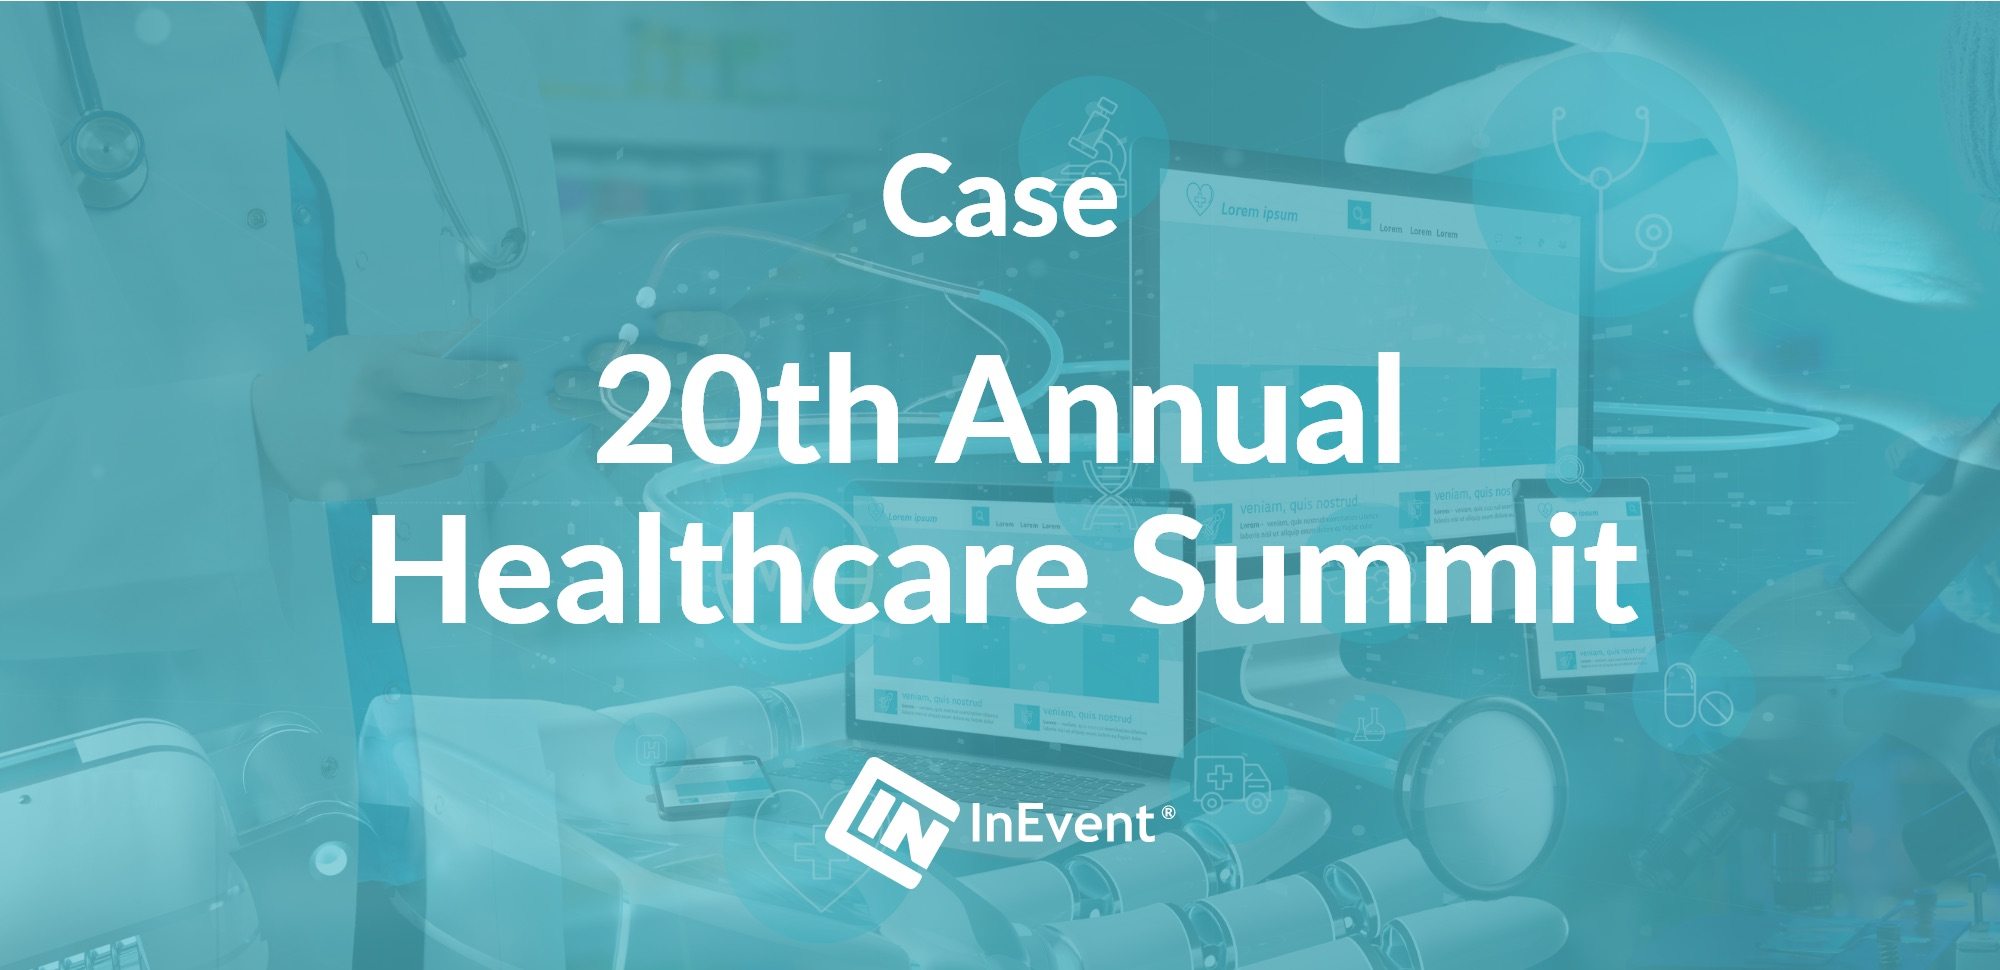 20th Annual Healthcare Summit